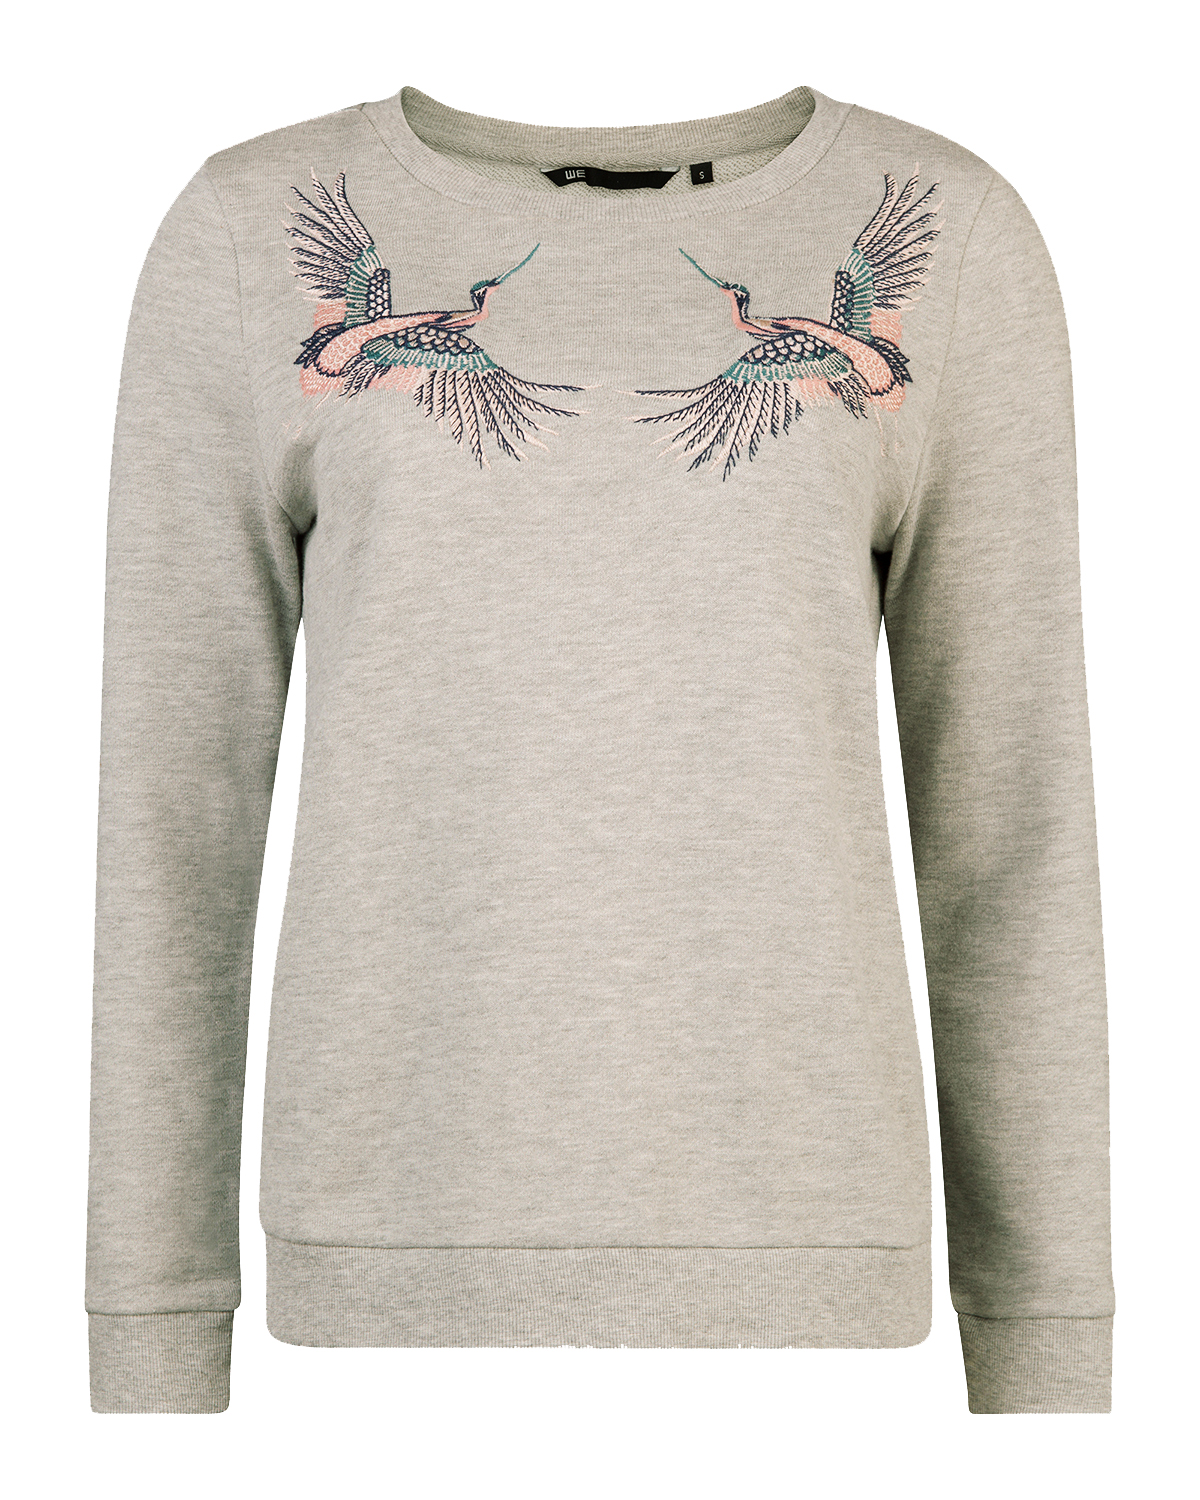 Dames embroidery bird sweater